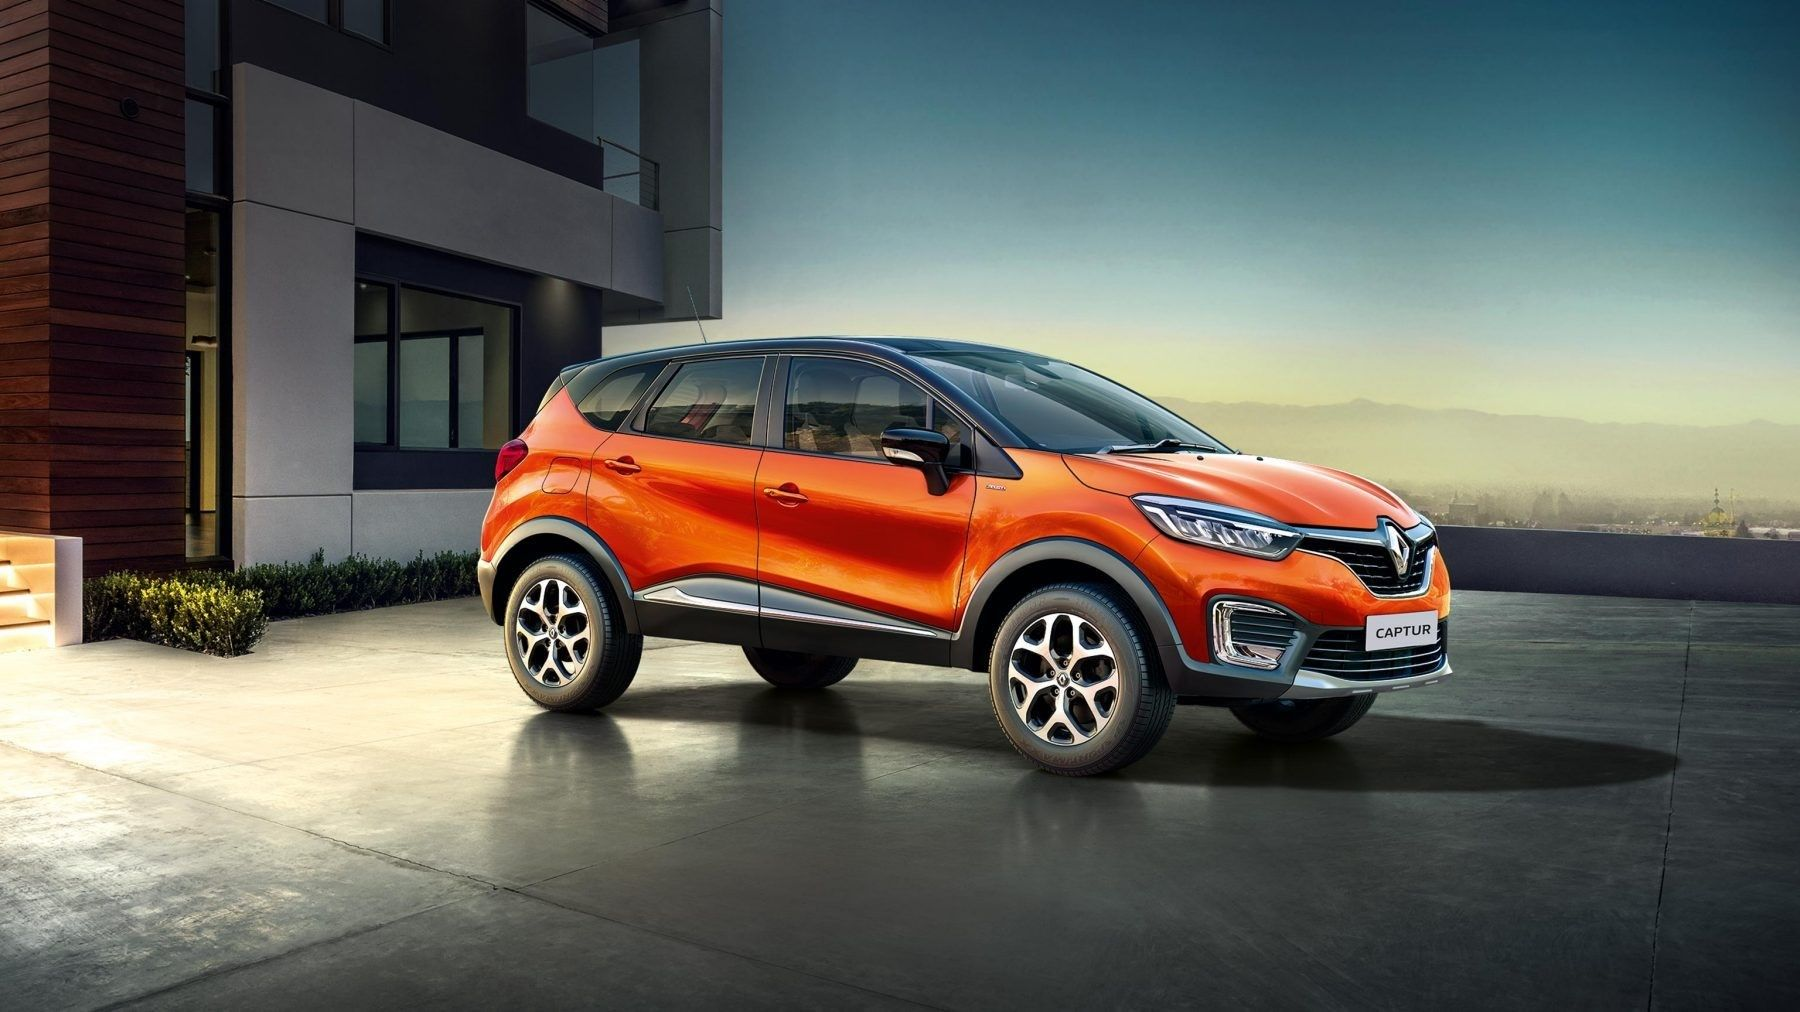 Pin By Manas Sharma On All About Renault Cars Best Suv Best